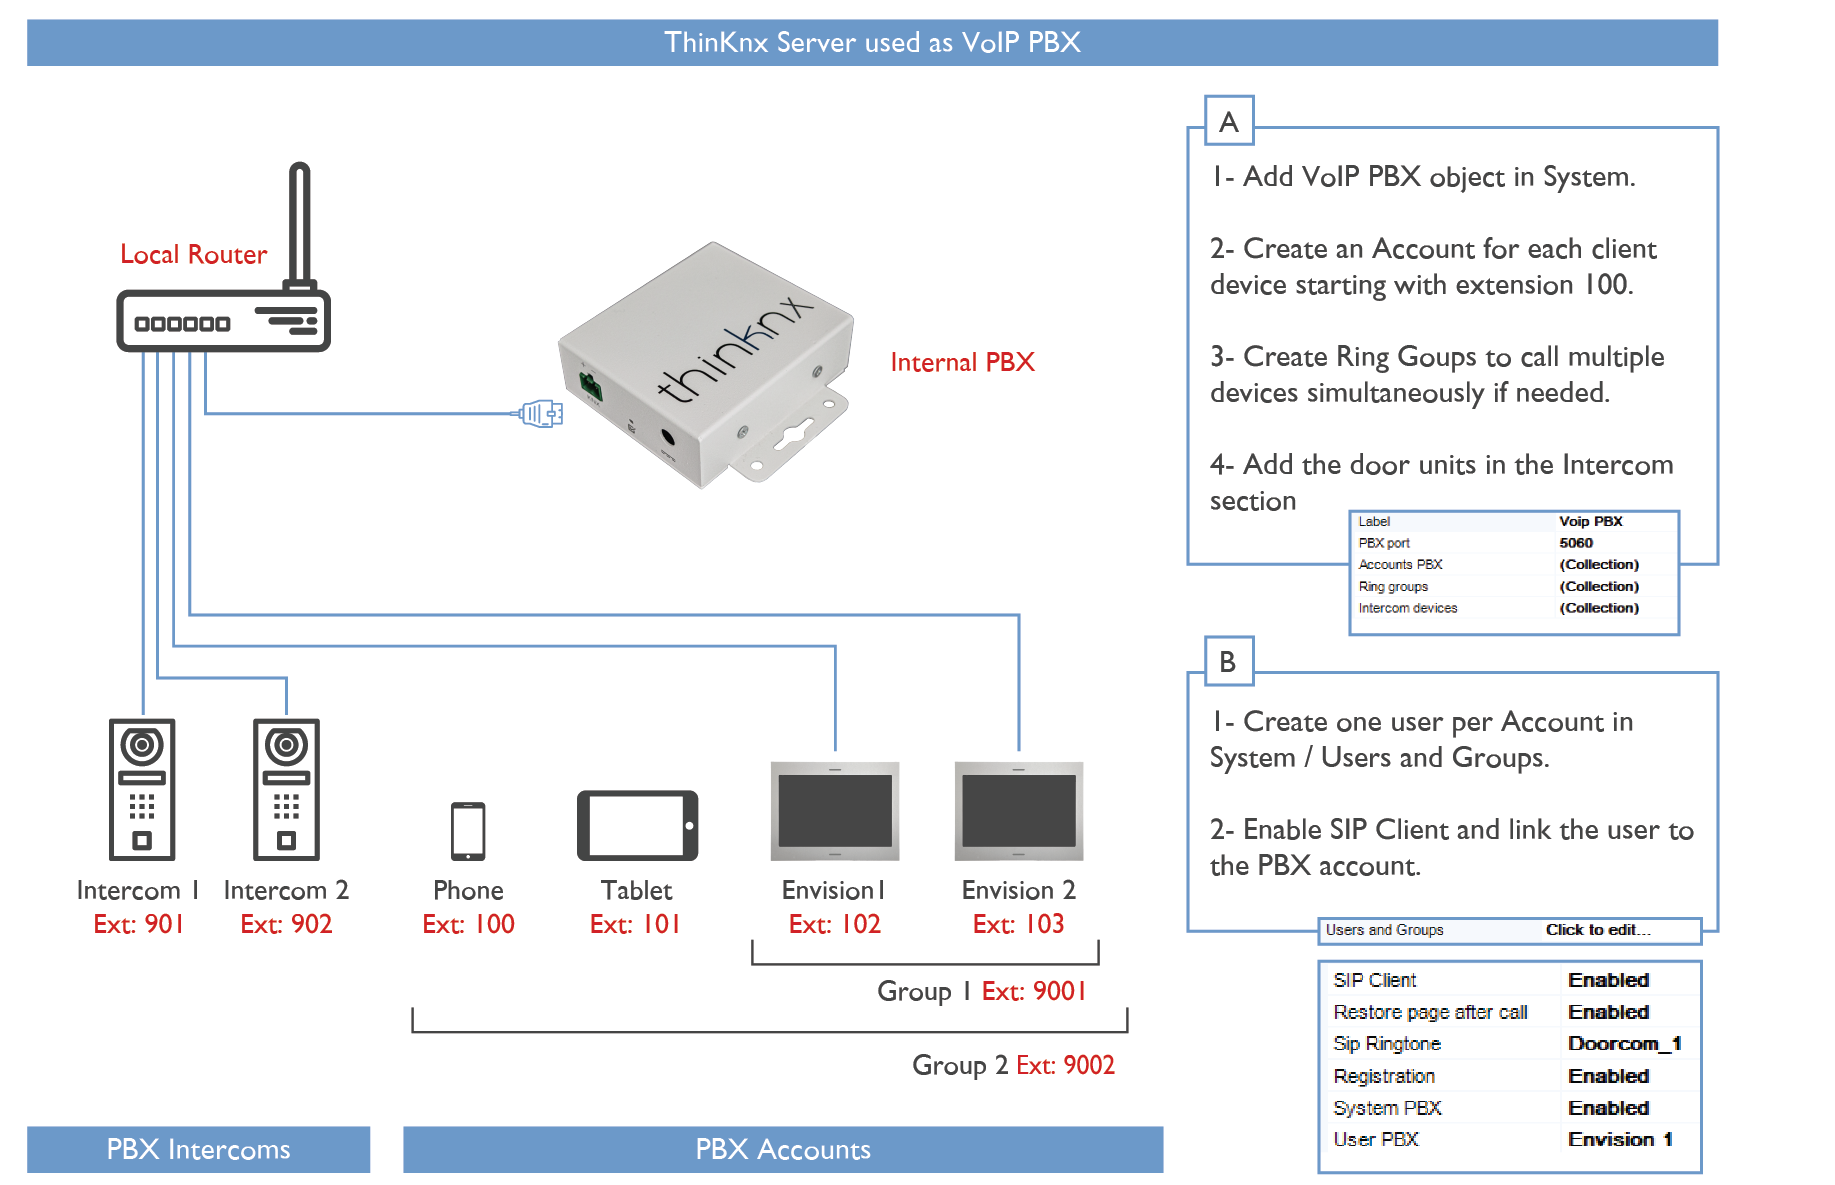 Thinknx server used as a VoIP PBX